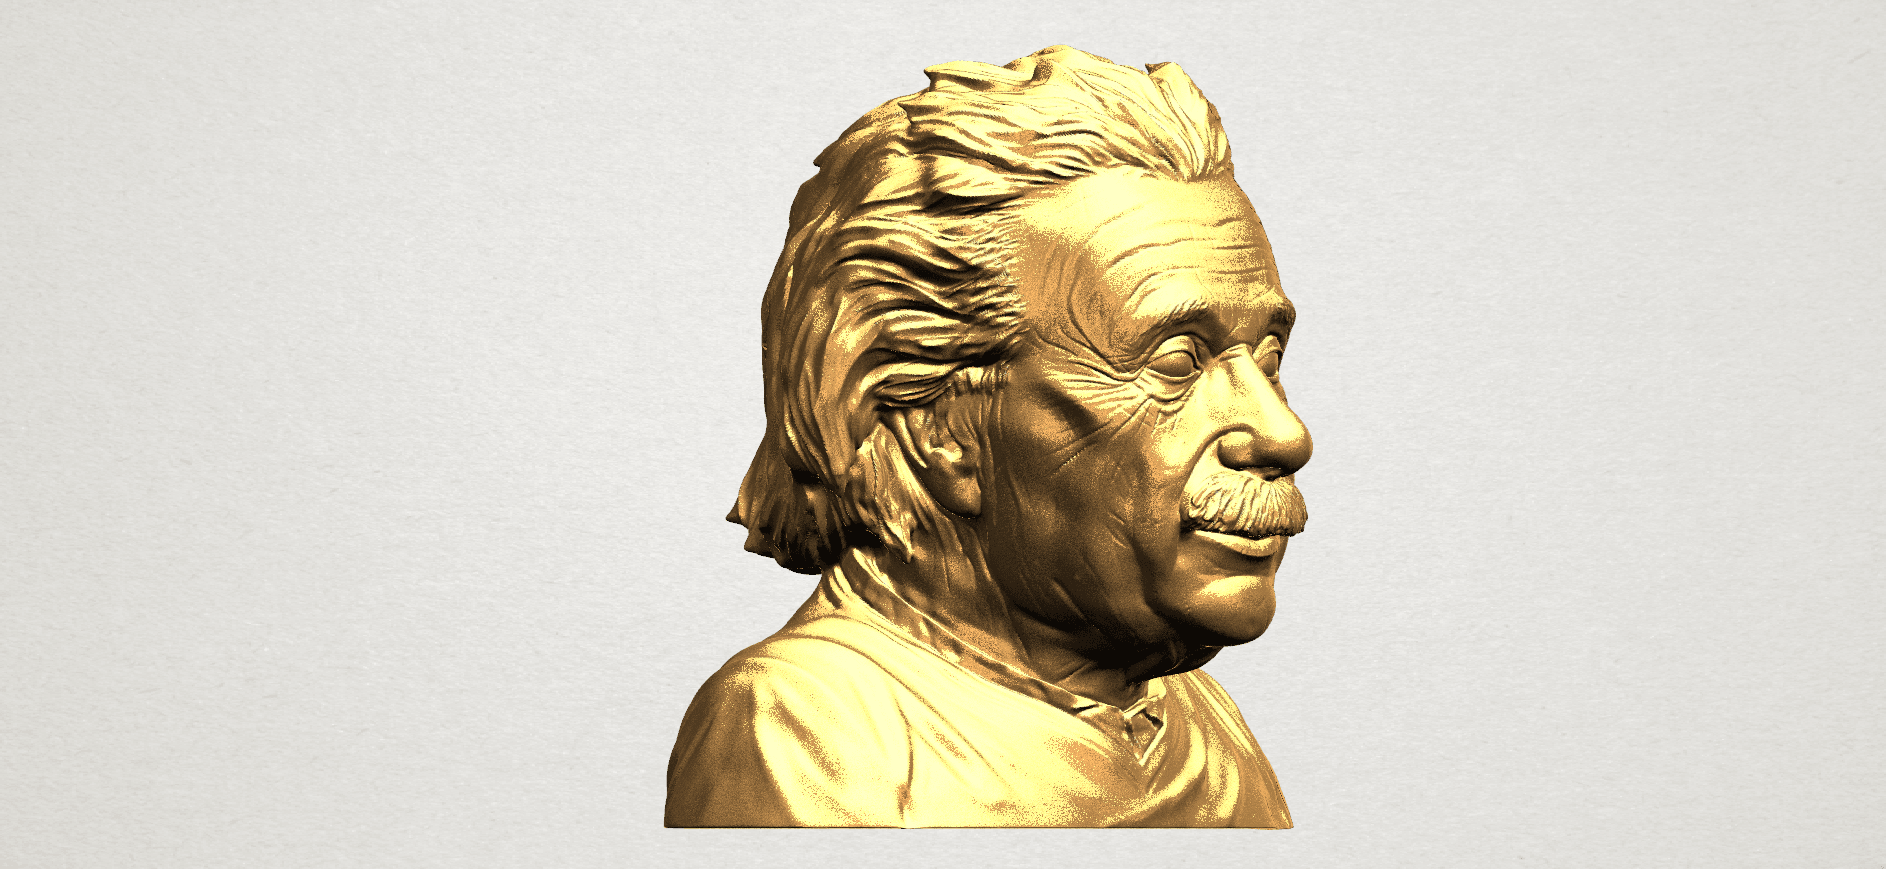 Einstein A06.png Download free STL file Einstein • 3D printer template, GeorgesNikkei